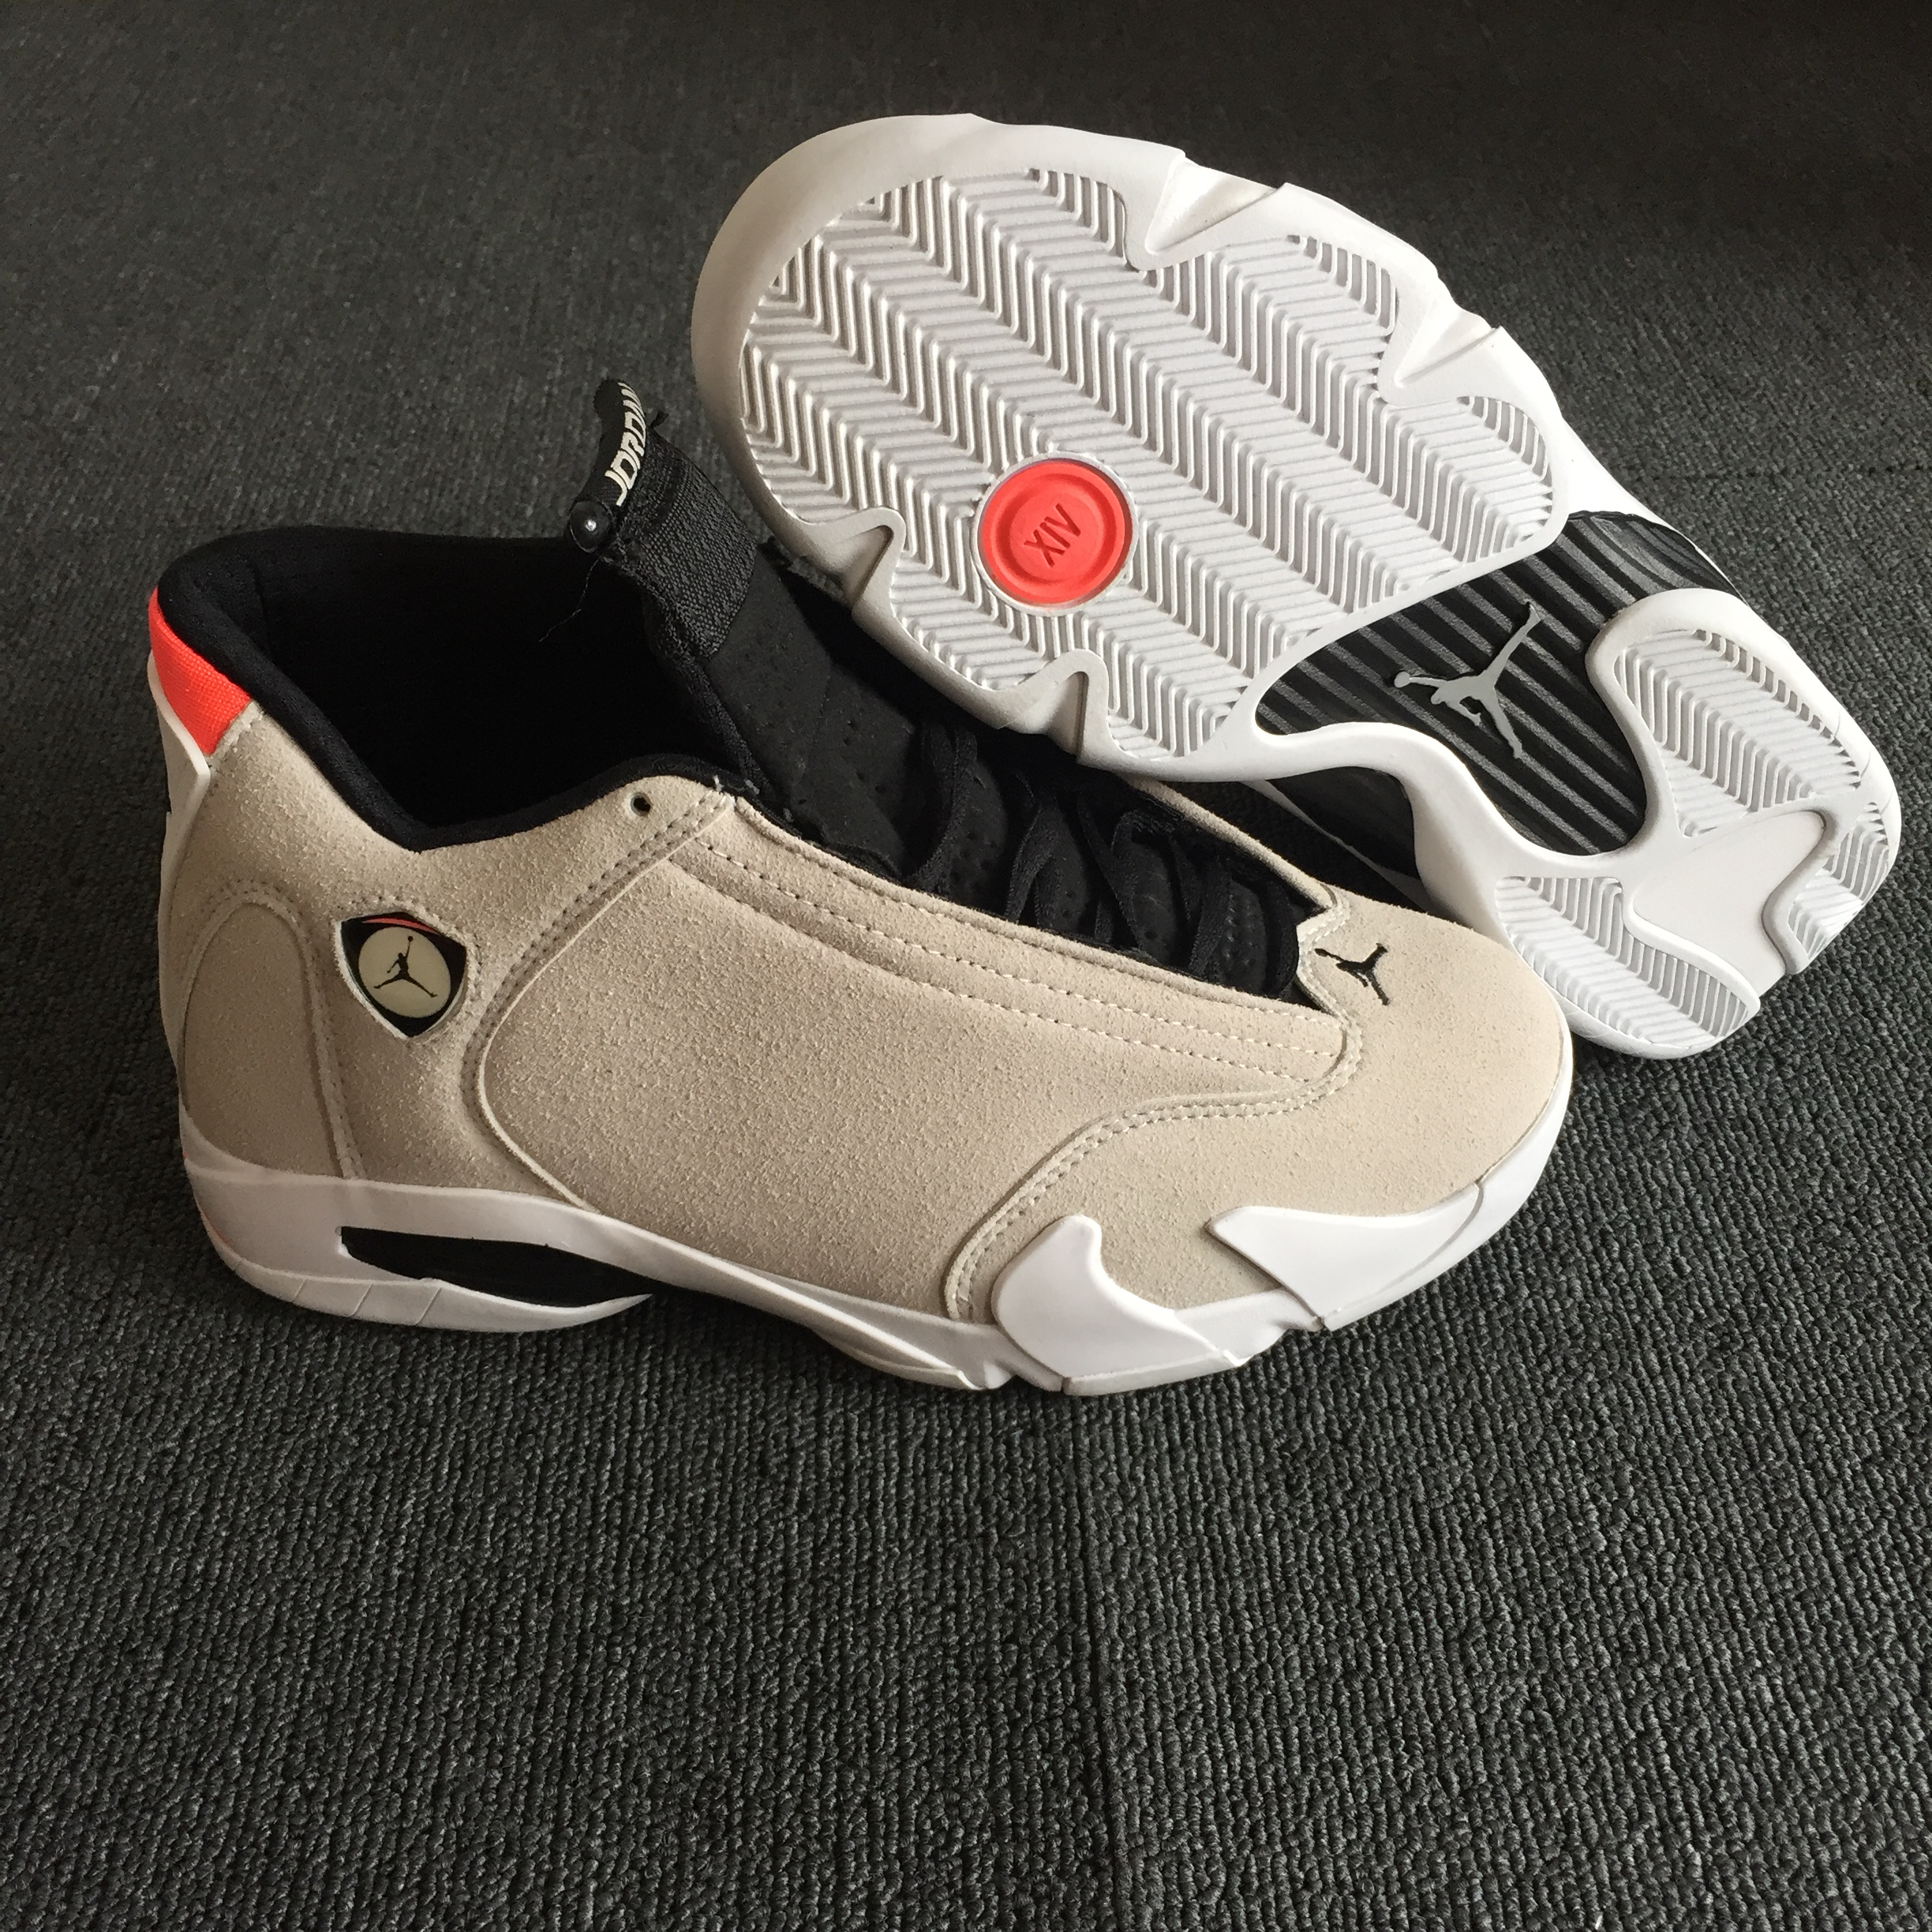 Air Jordan 14 Desert Sand Official Photos Shoes